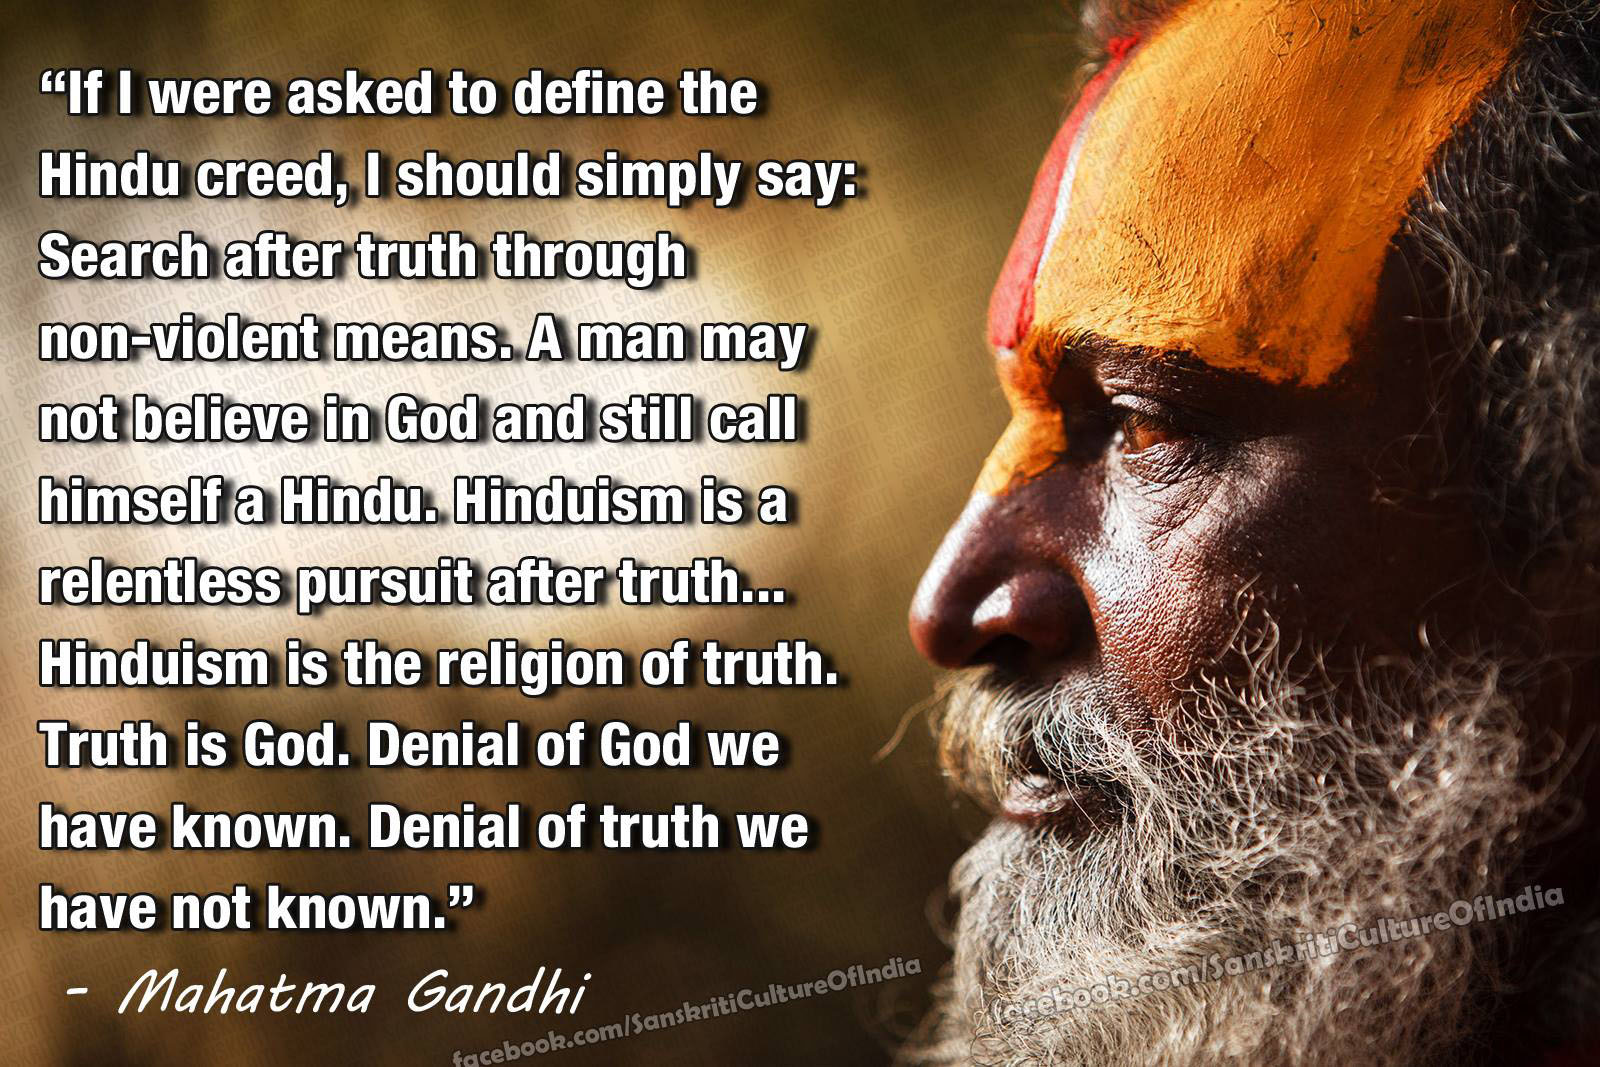 The Hindu Creed